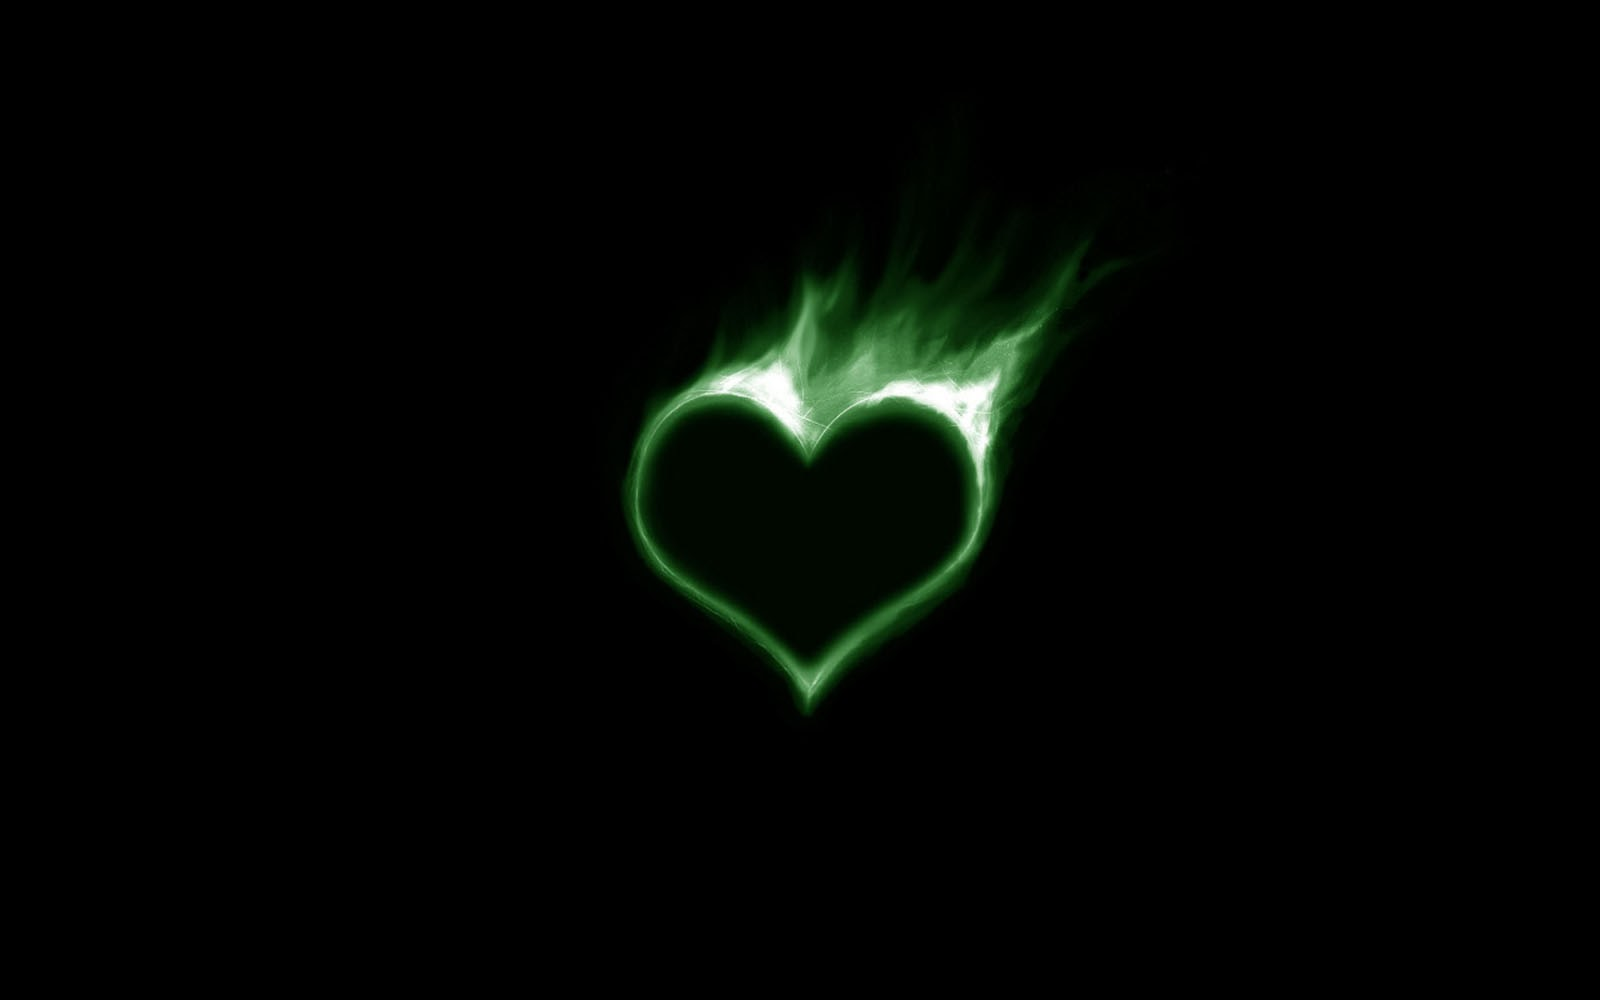 Green Heart Wallpapers - Top Wallpaper Desktop